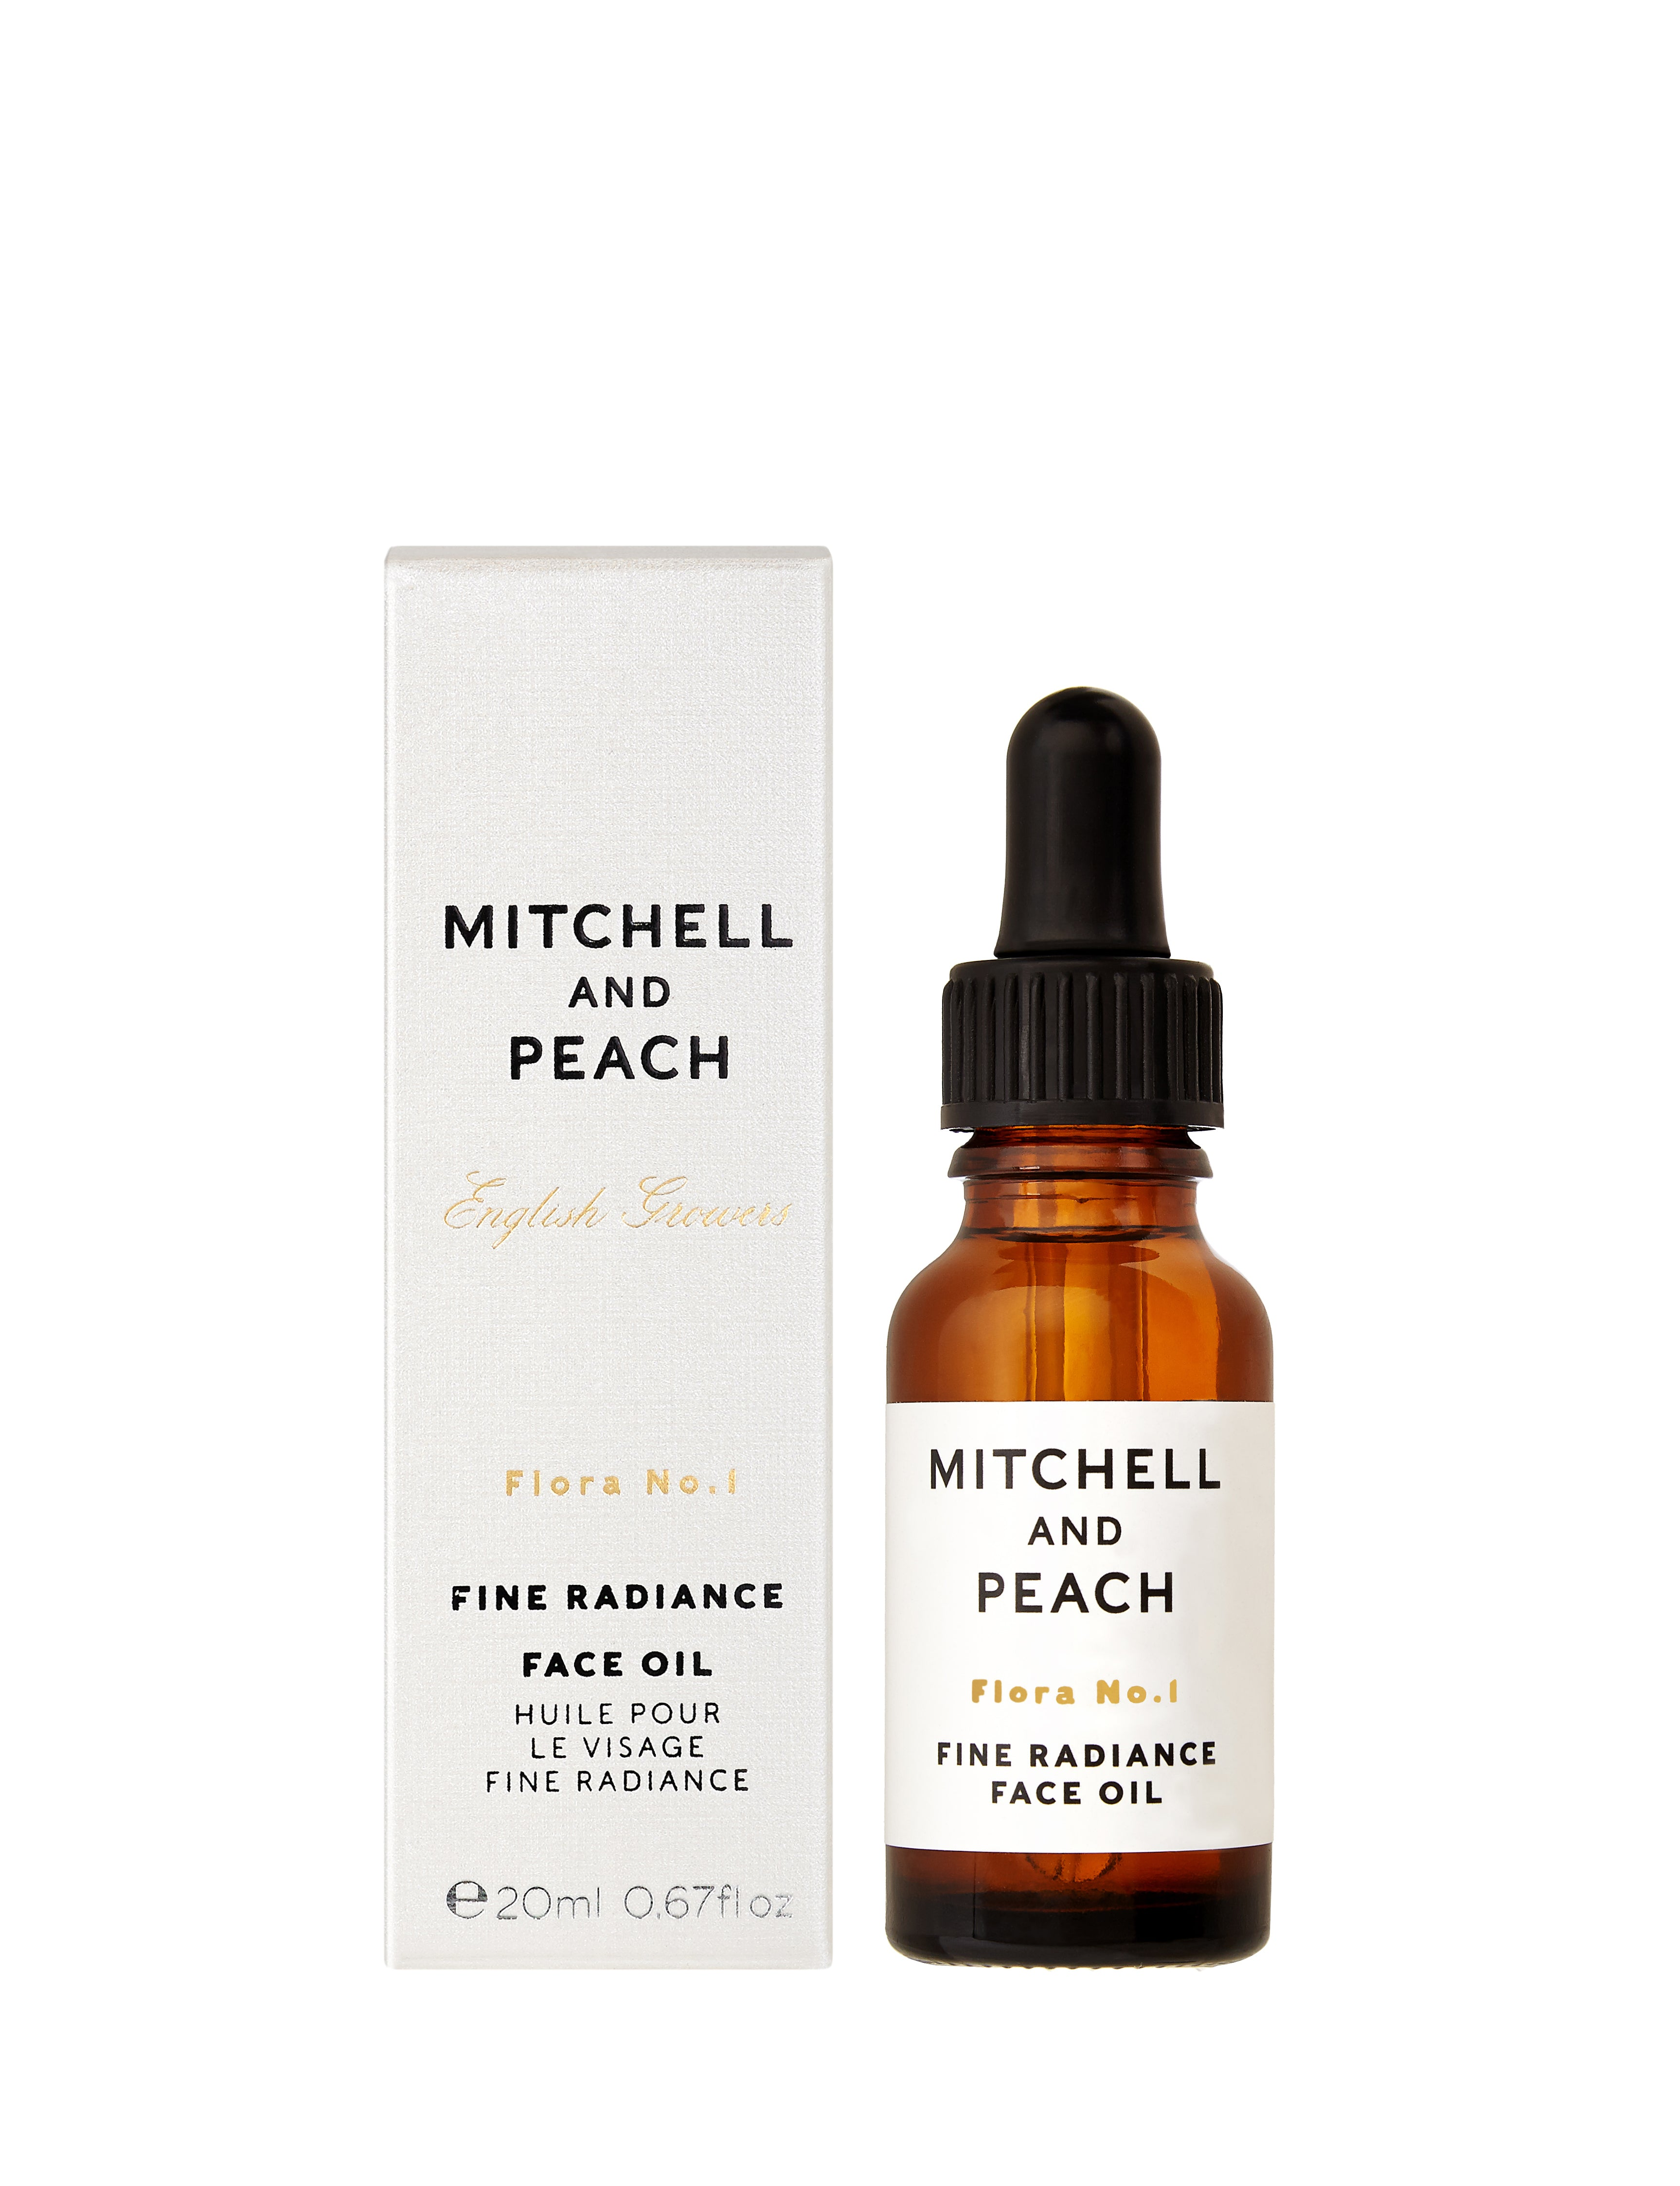 flora no 1 fine radiance face oil mitchell and peach